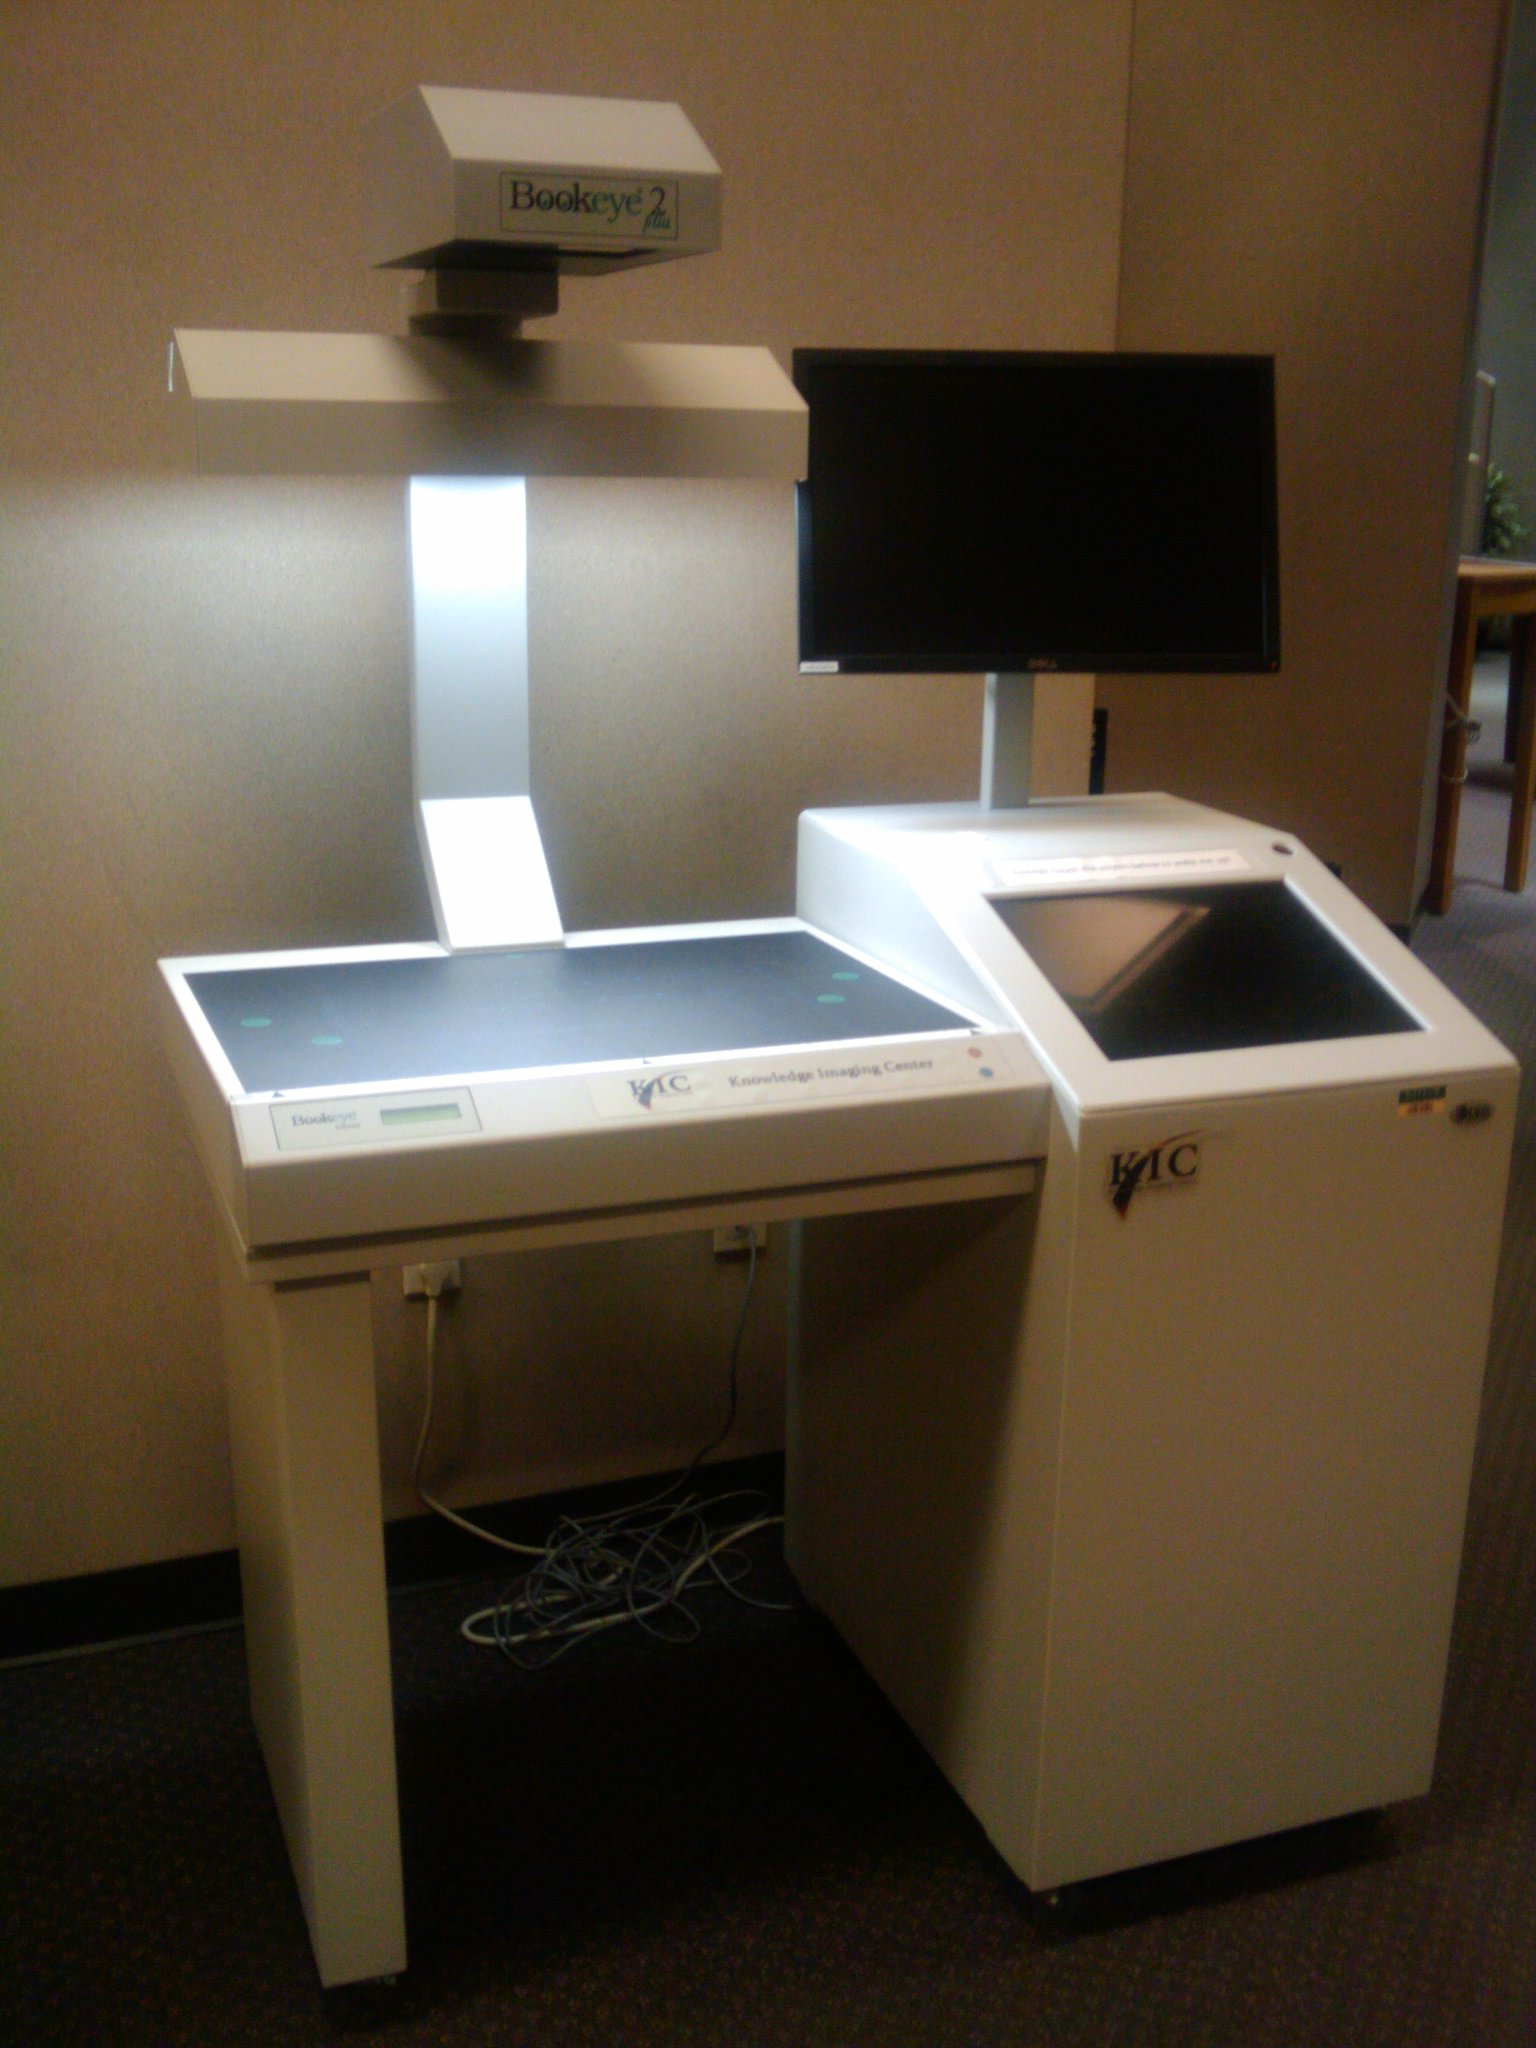 Library KIC Scanner